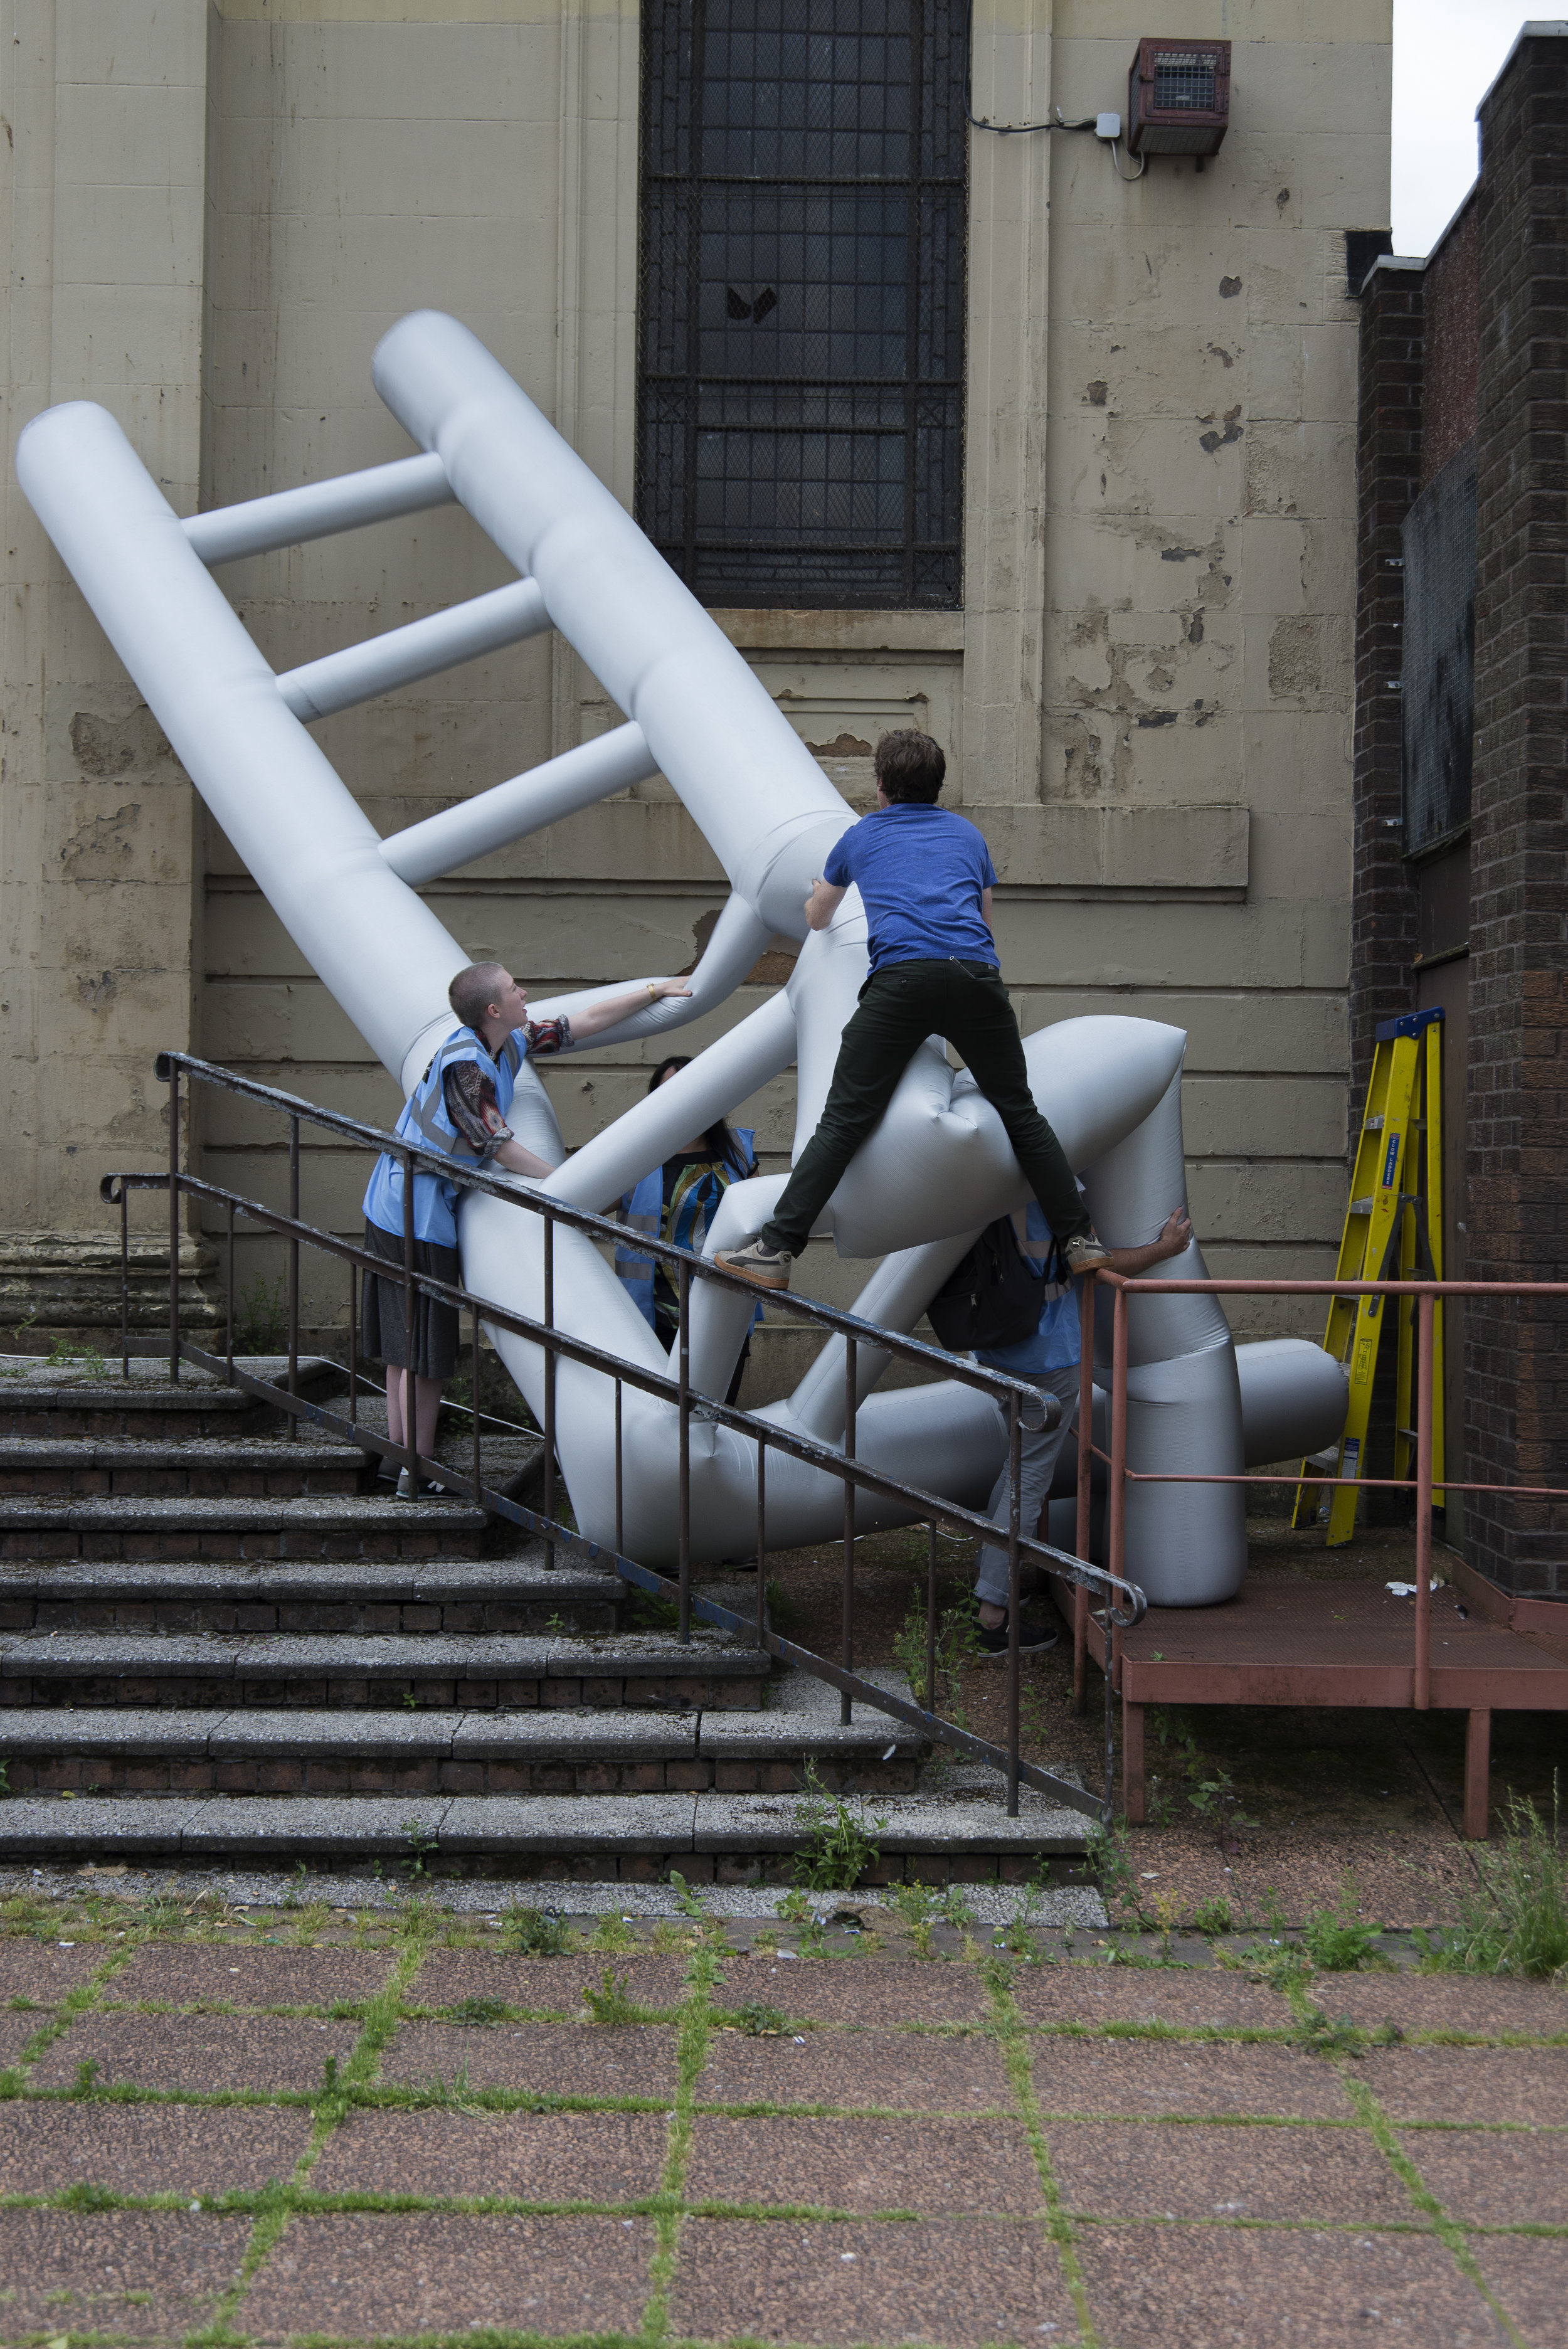 Installing inflatable sculptures as part of Pulse - a series of temporary and permanent artworks - 2014